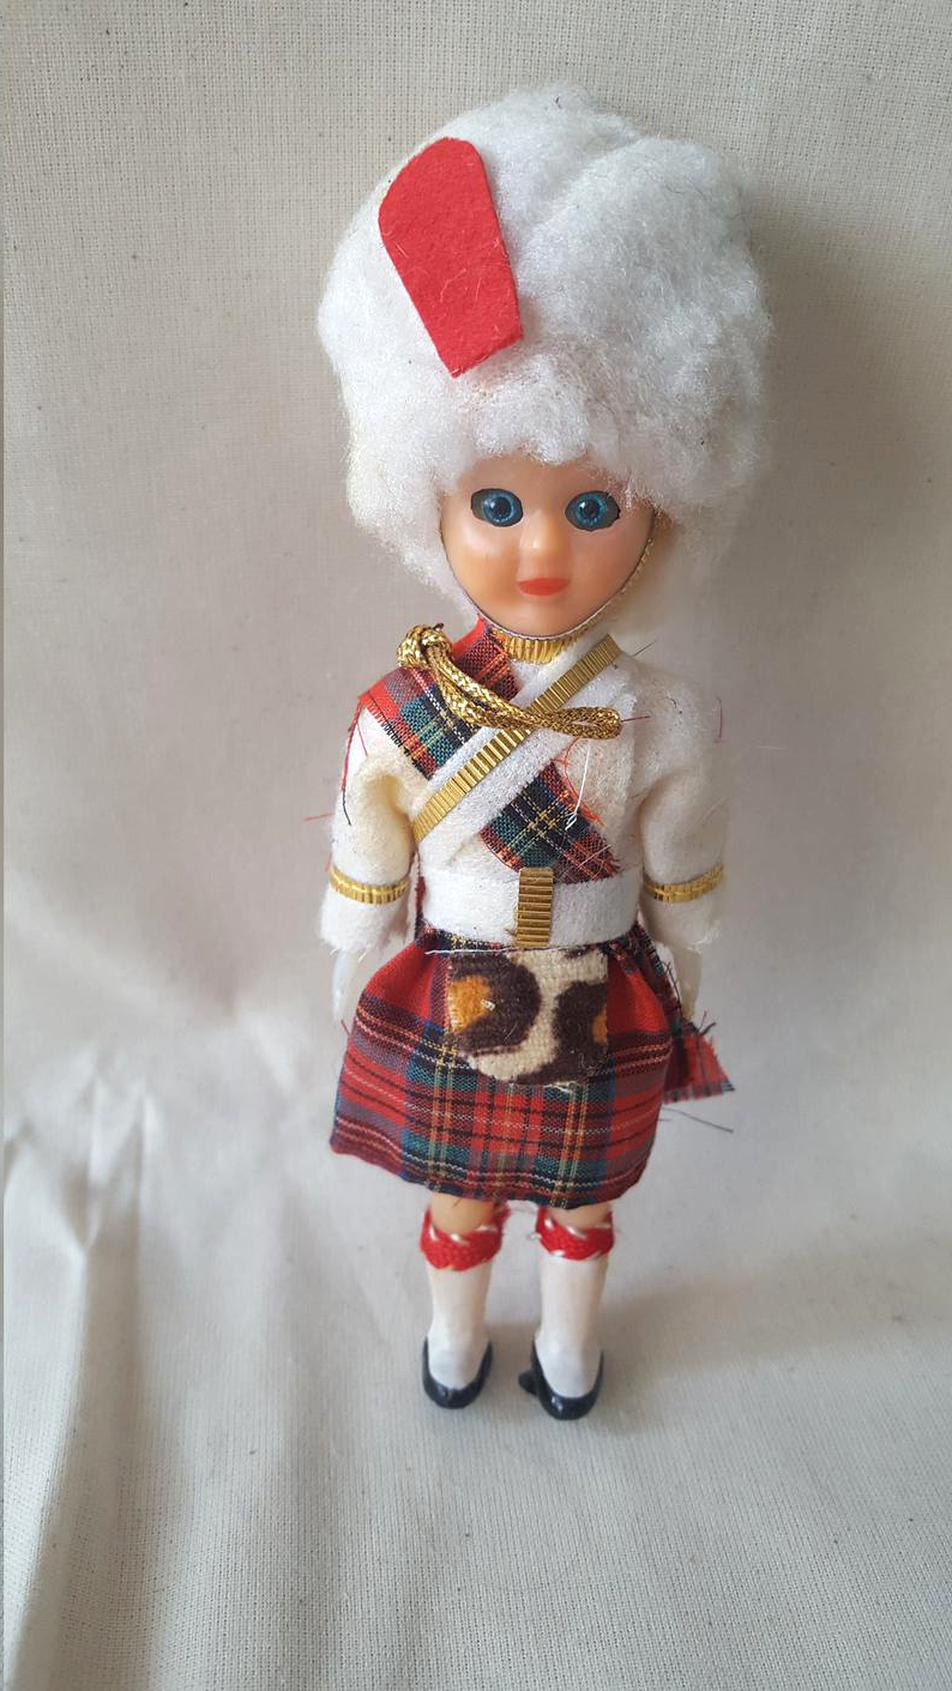 scottish doll for sale